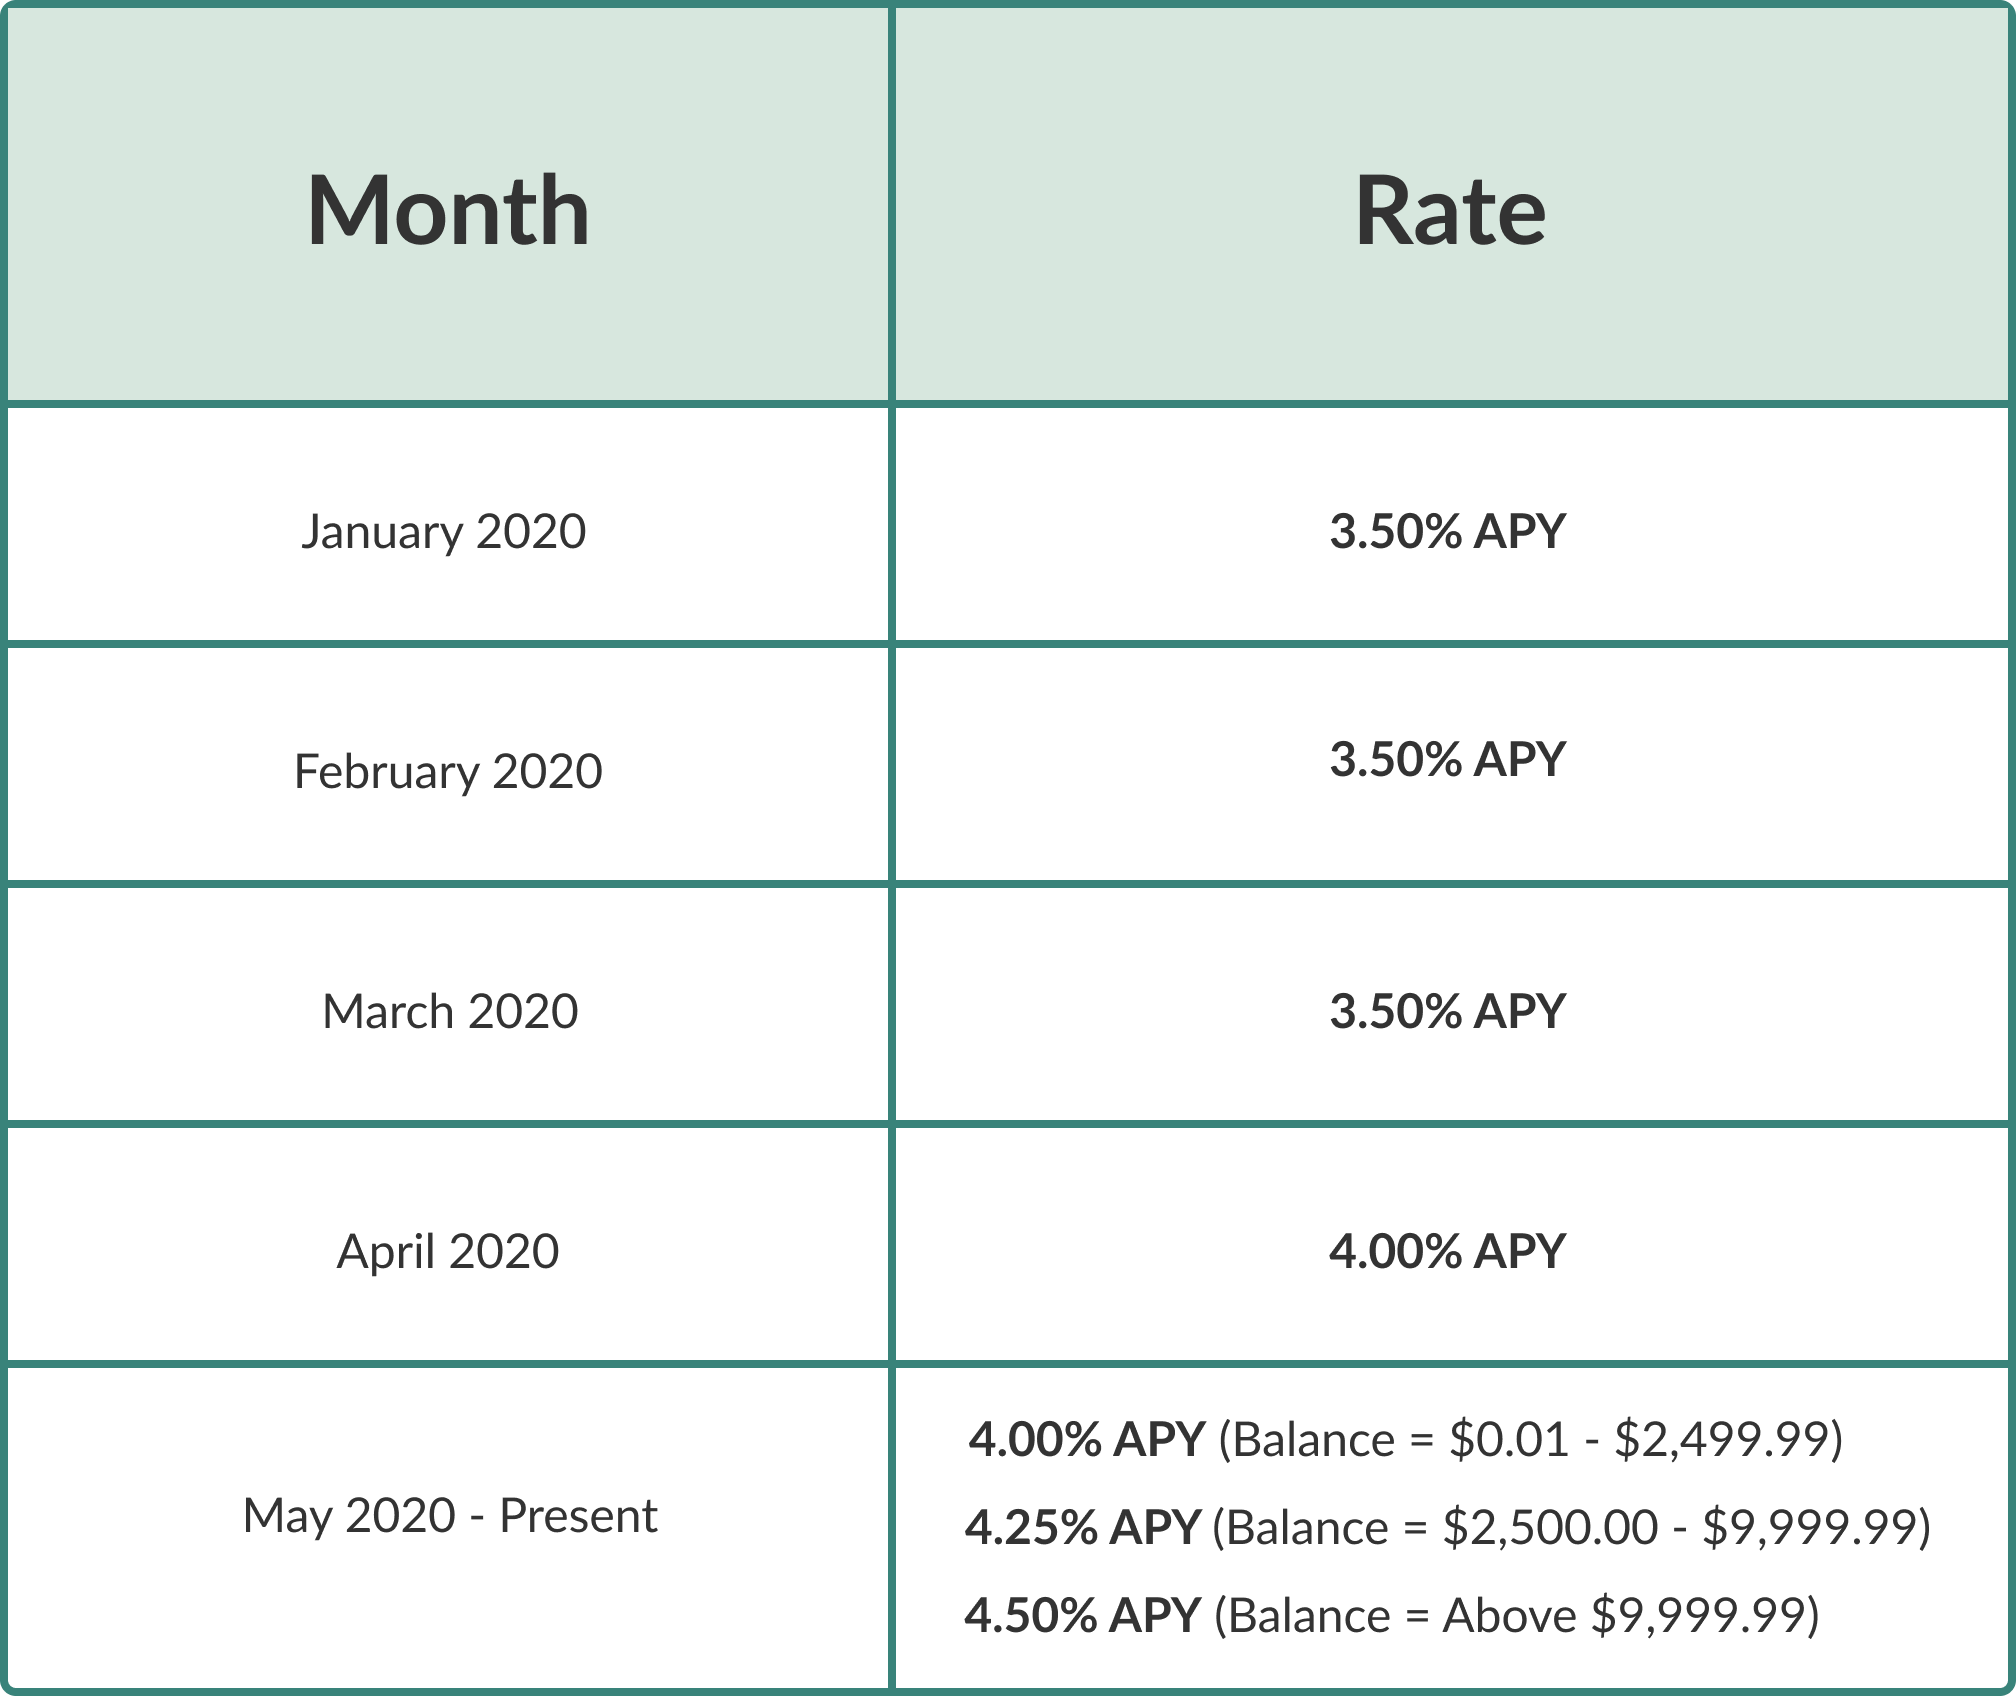 Linus Historical Rates. Currently 4.0% APY, 4.25% APY, or 4.5% APY depending on account balance.